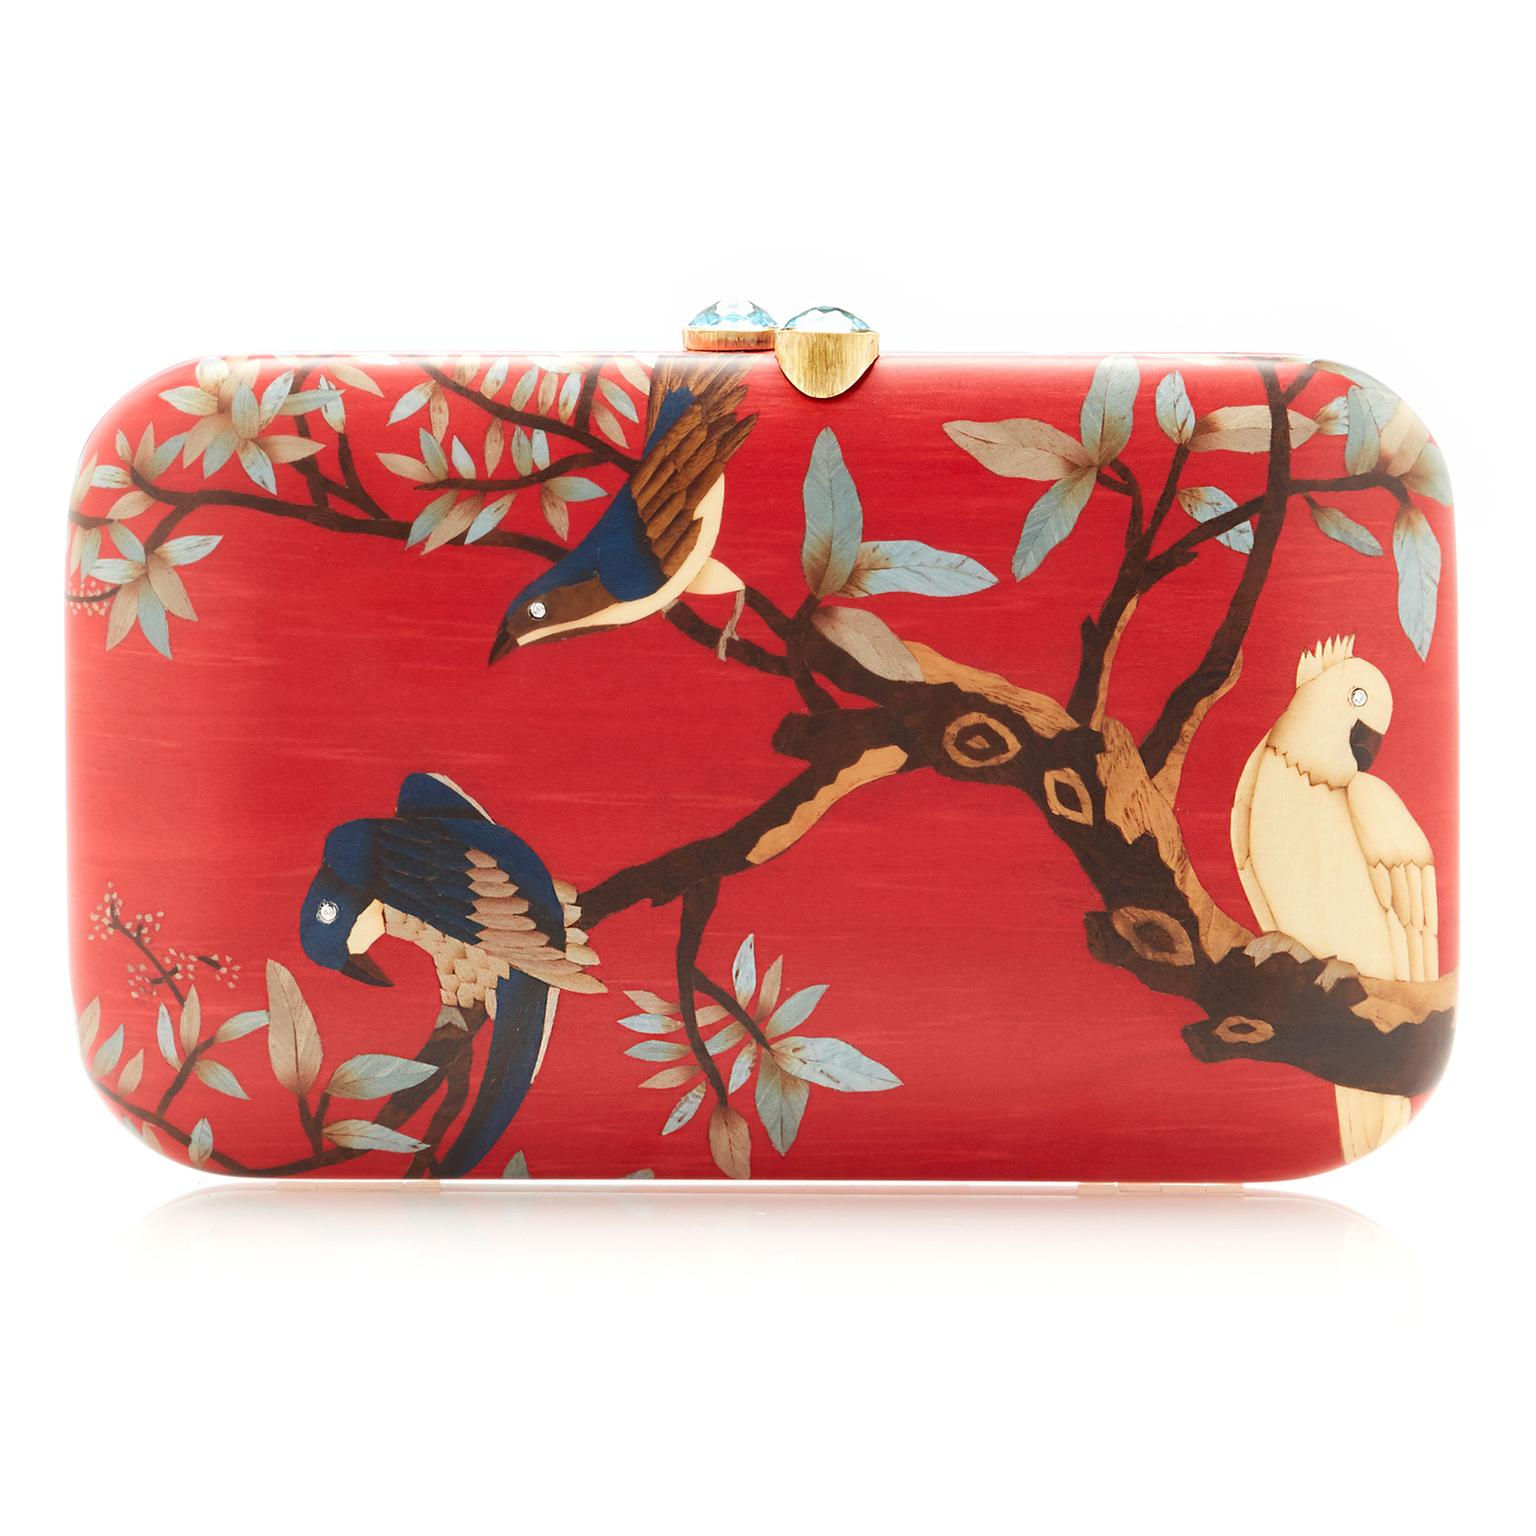 Silvia Furmanovich red marquetry clutchbag